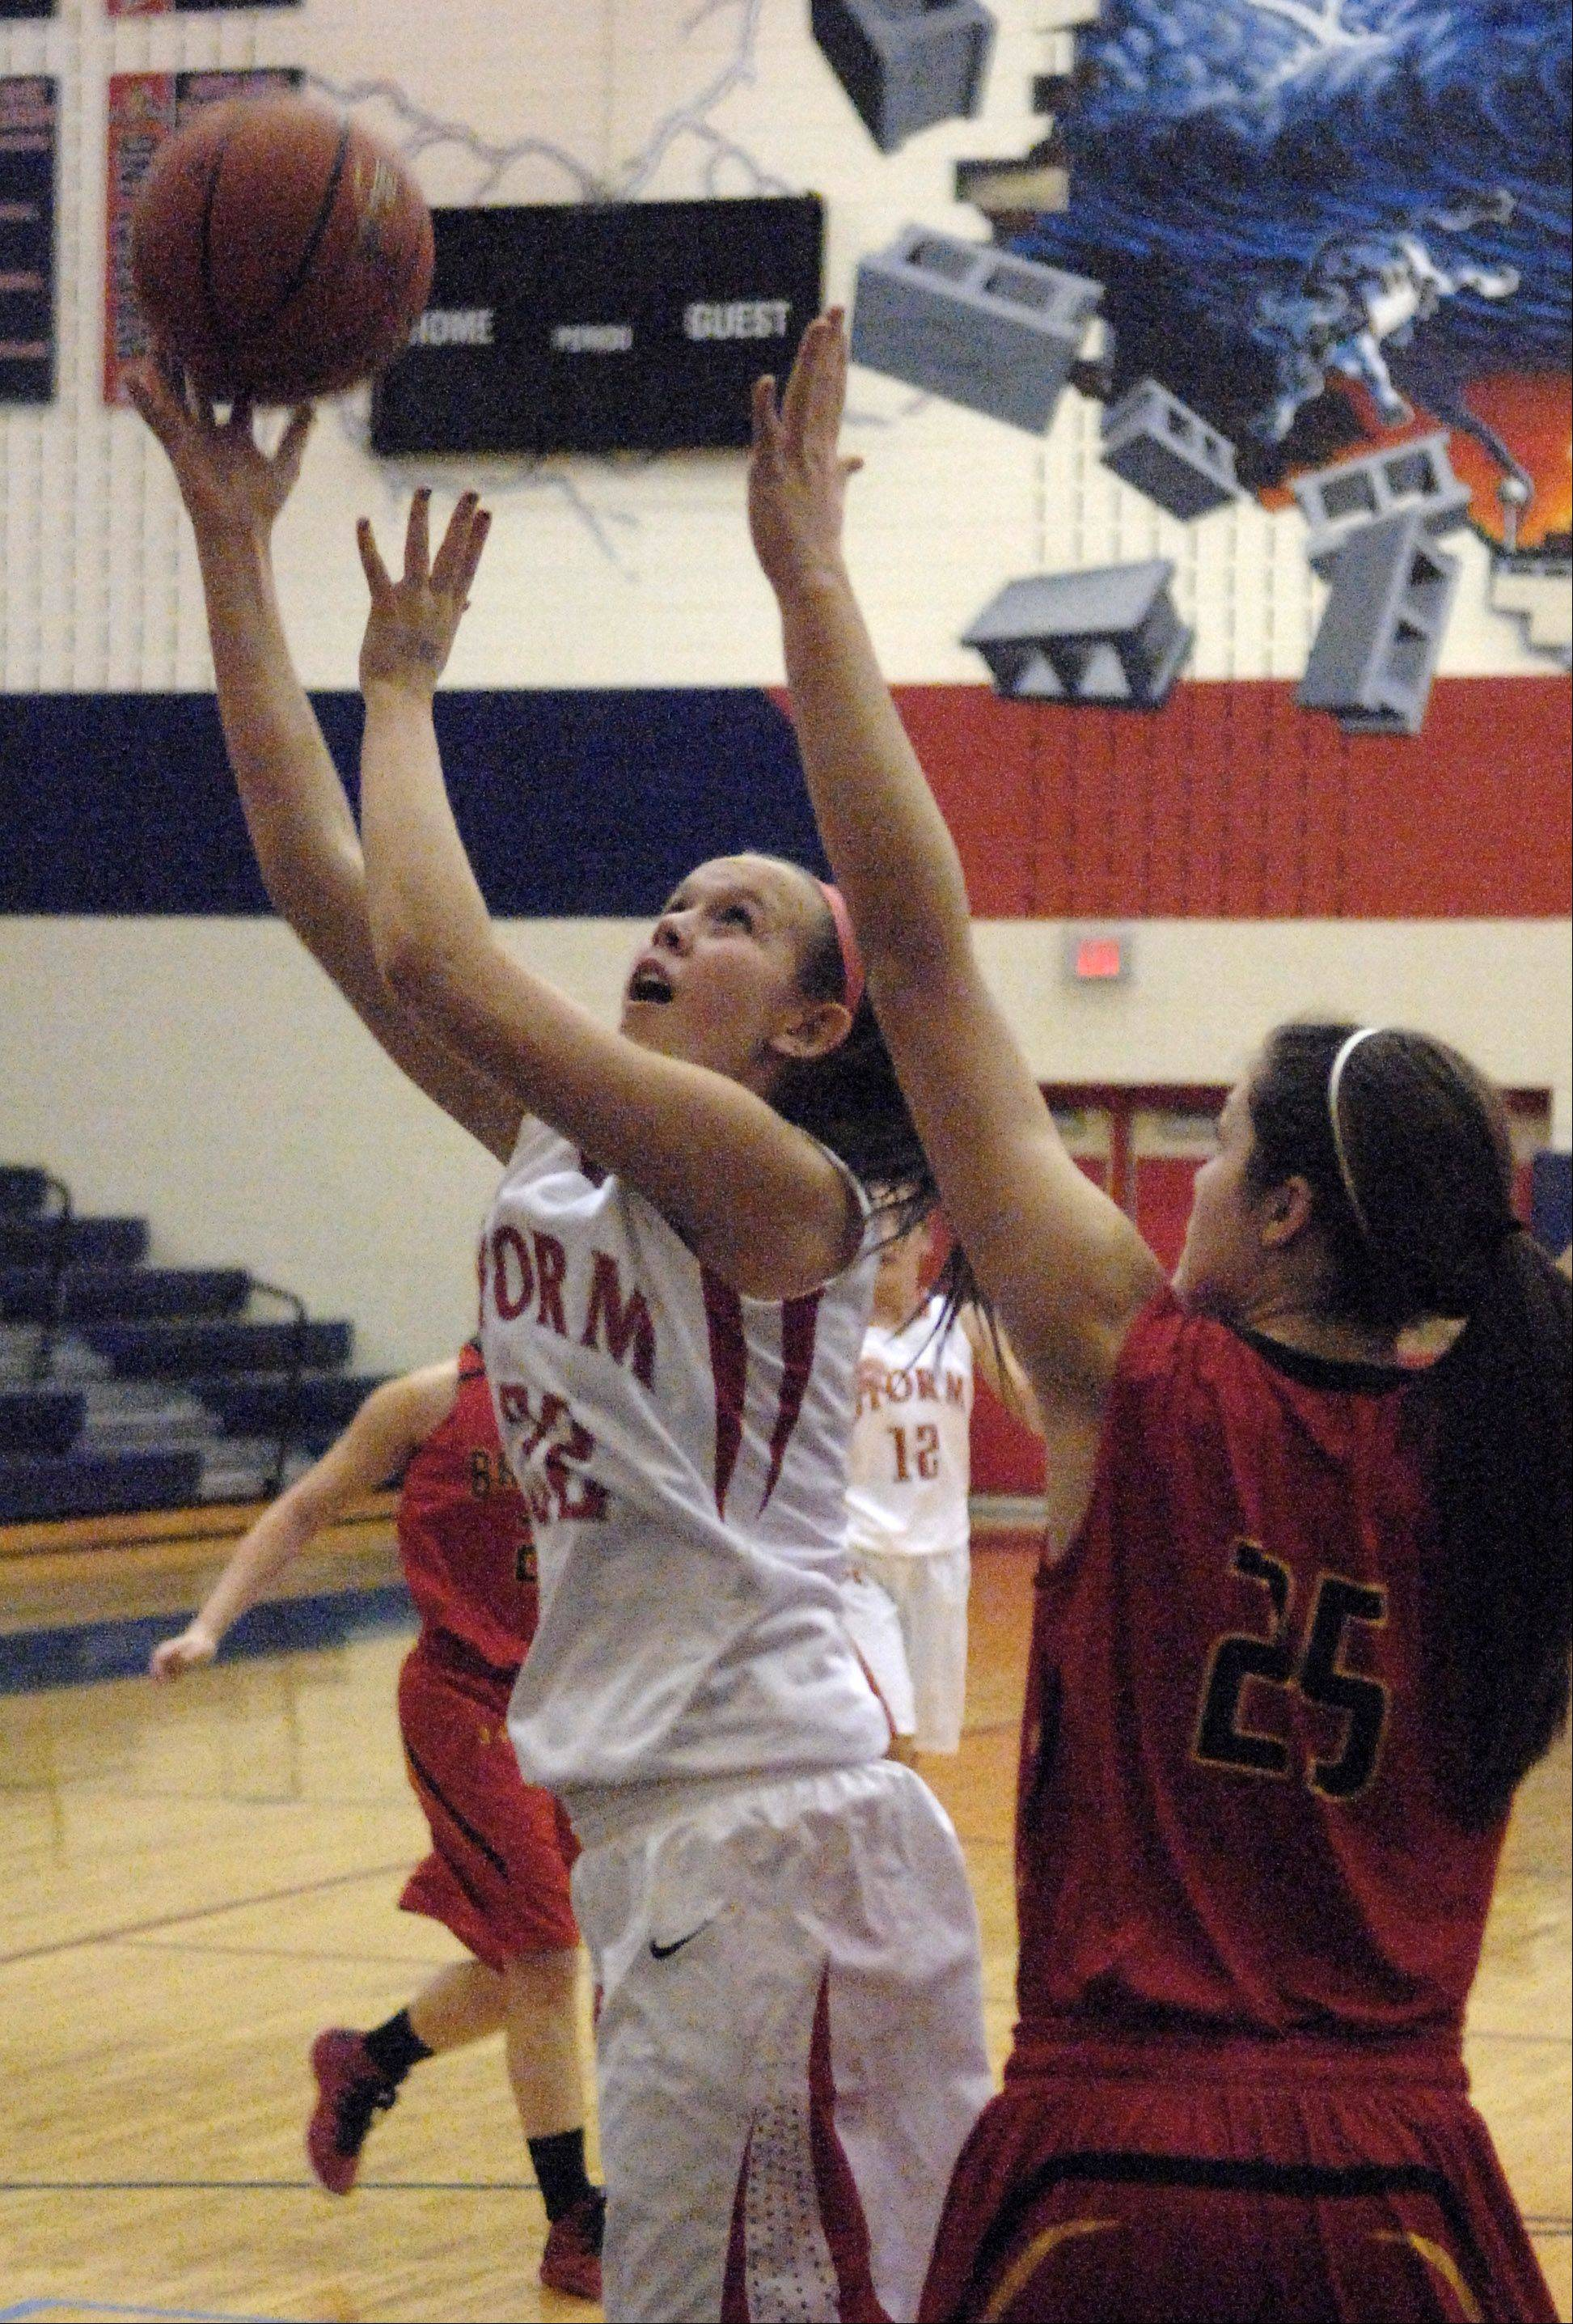 South Elgin's Laura McIntosh puts up a shot over Batavia's Hannah Frazier.